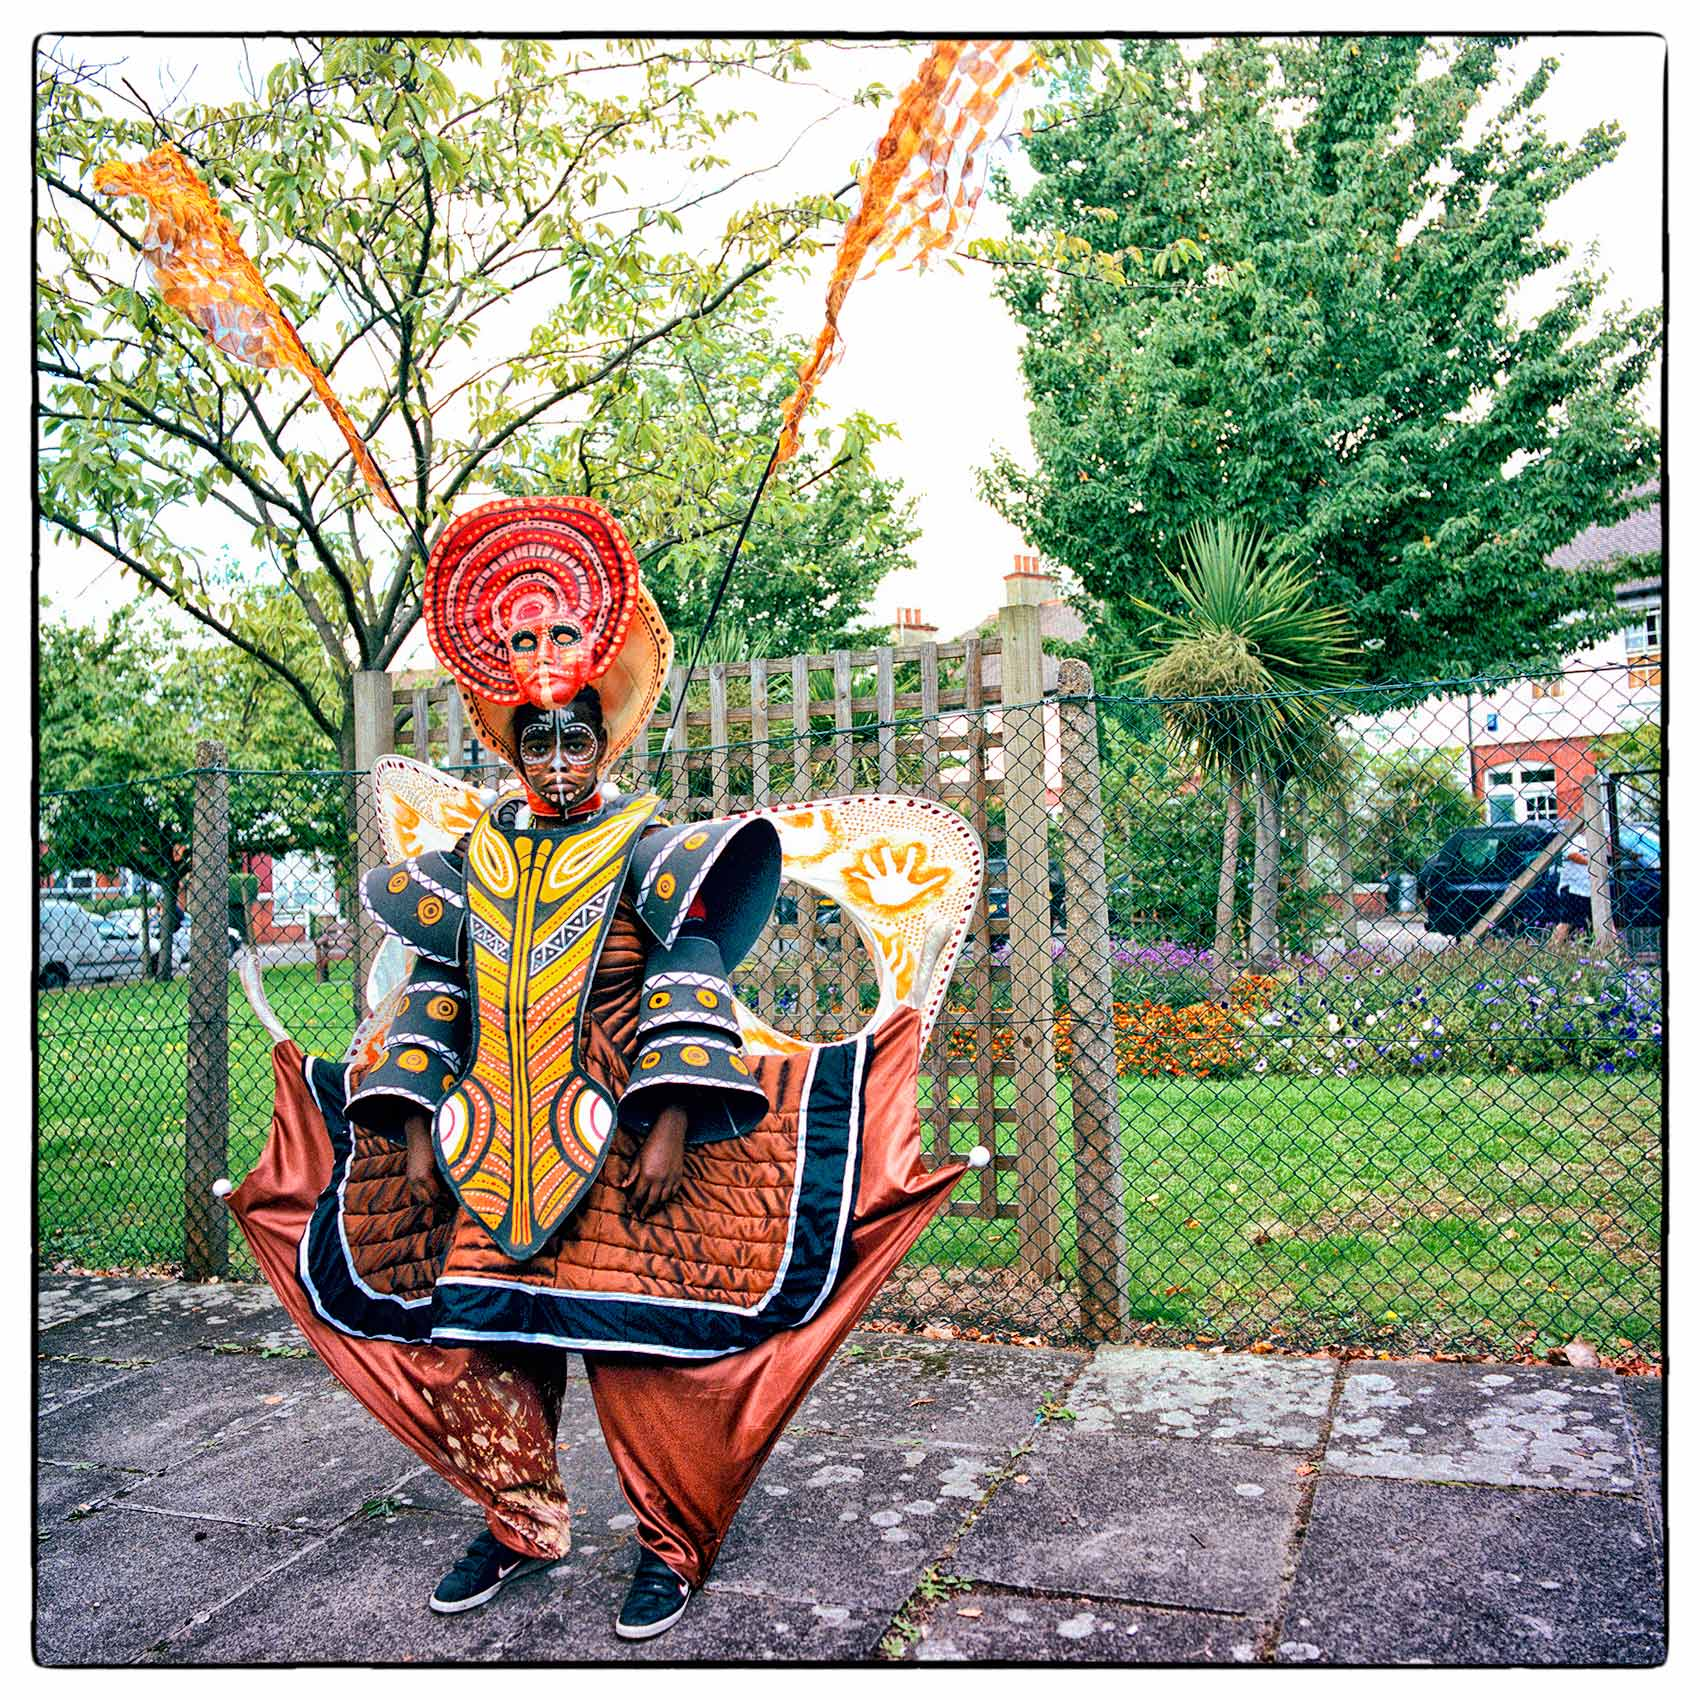 a-man-wearing-a-costume-poses-for-a-photo-in-londons-notting-hill-during-carnival